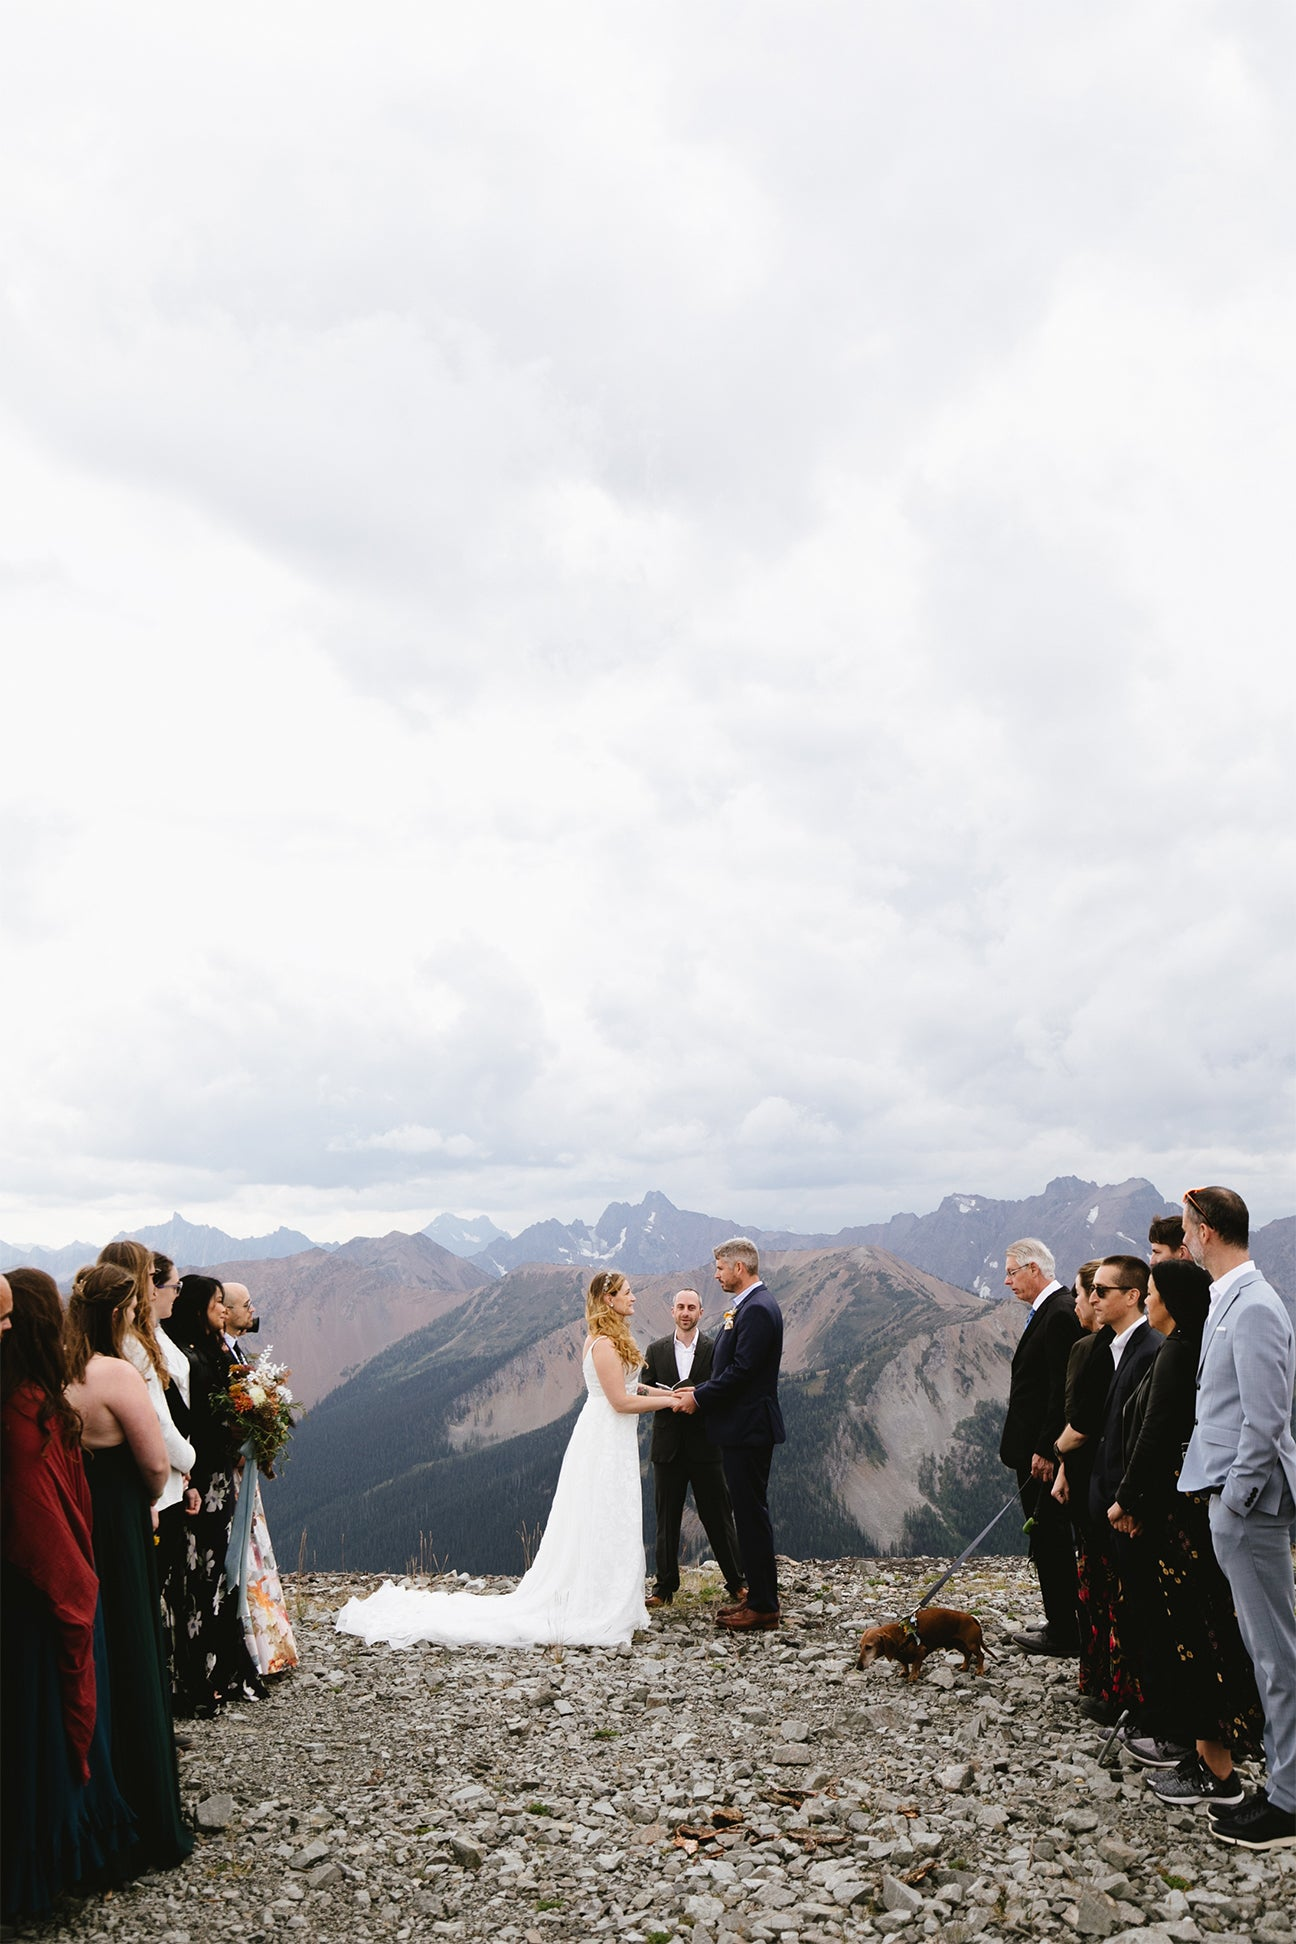 couple getting married on mountain